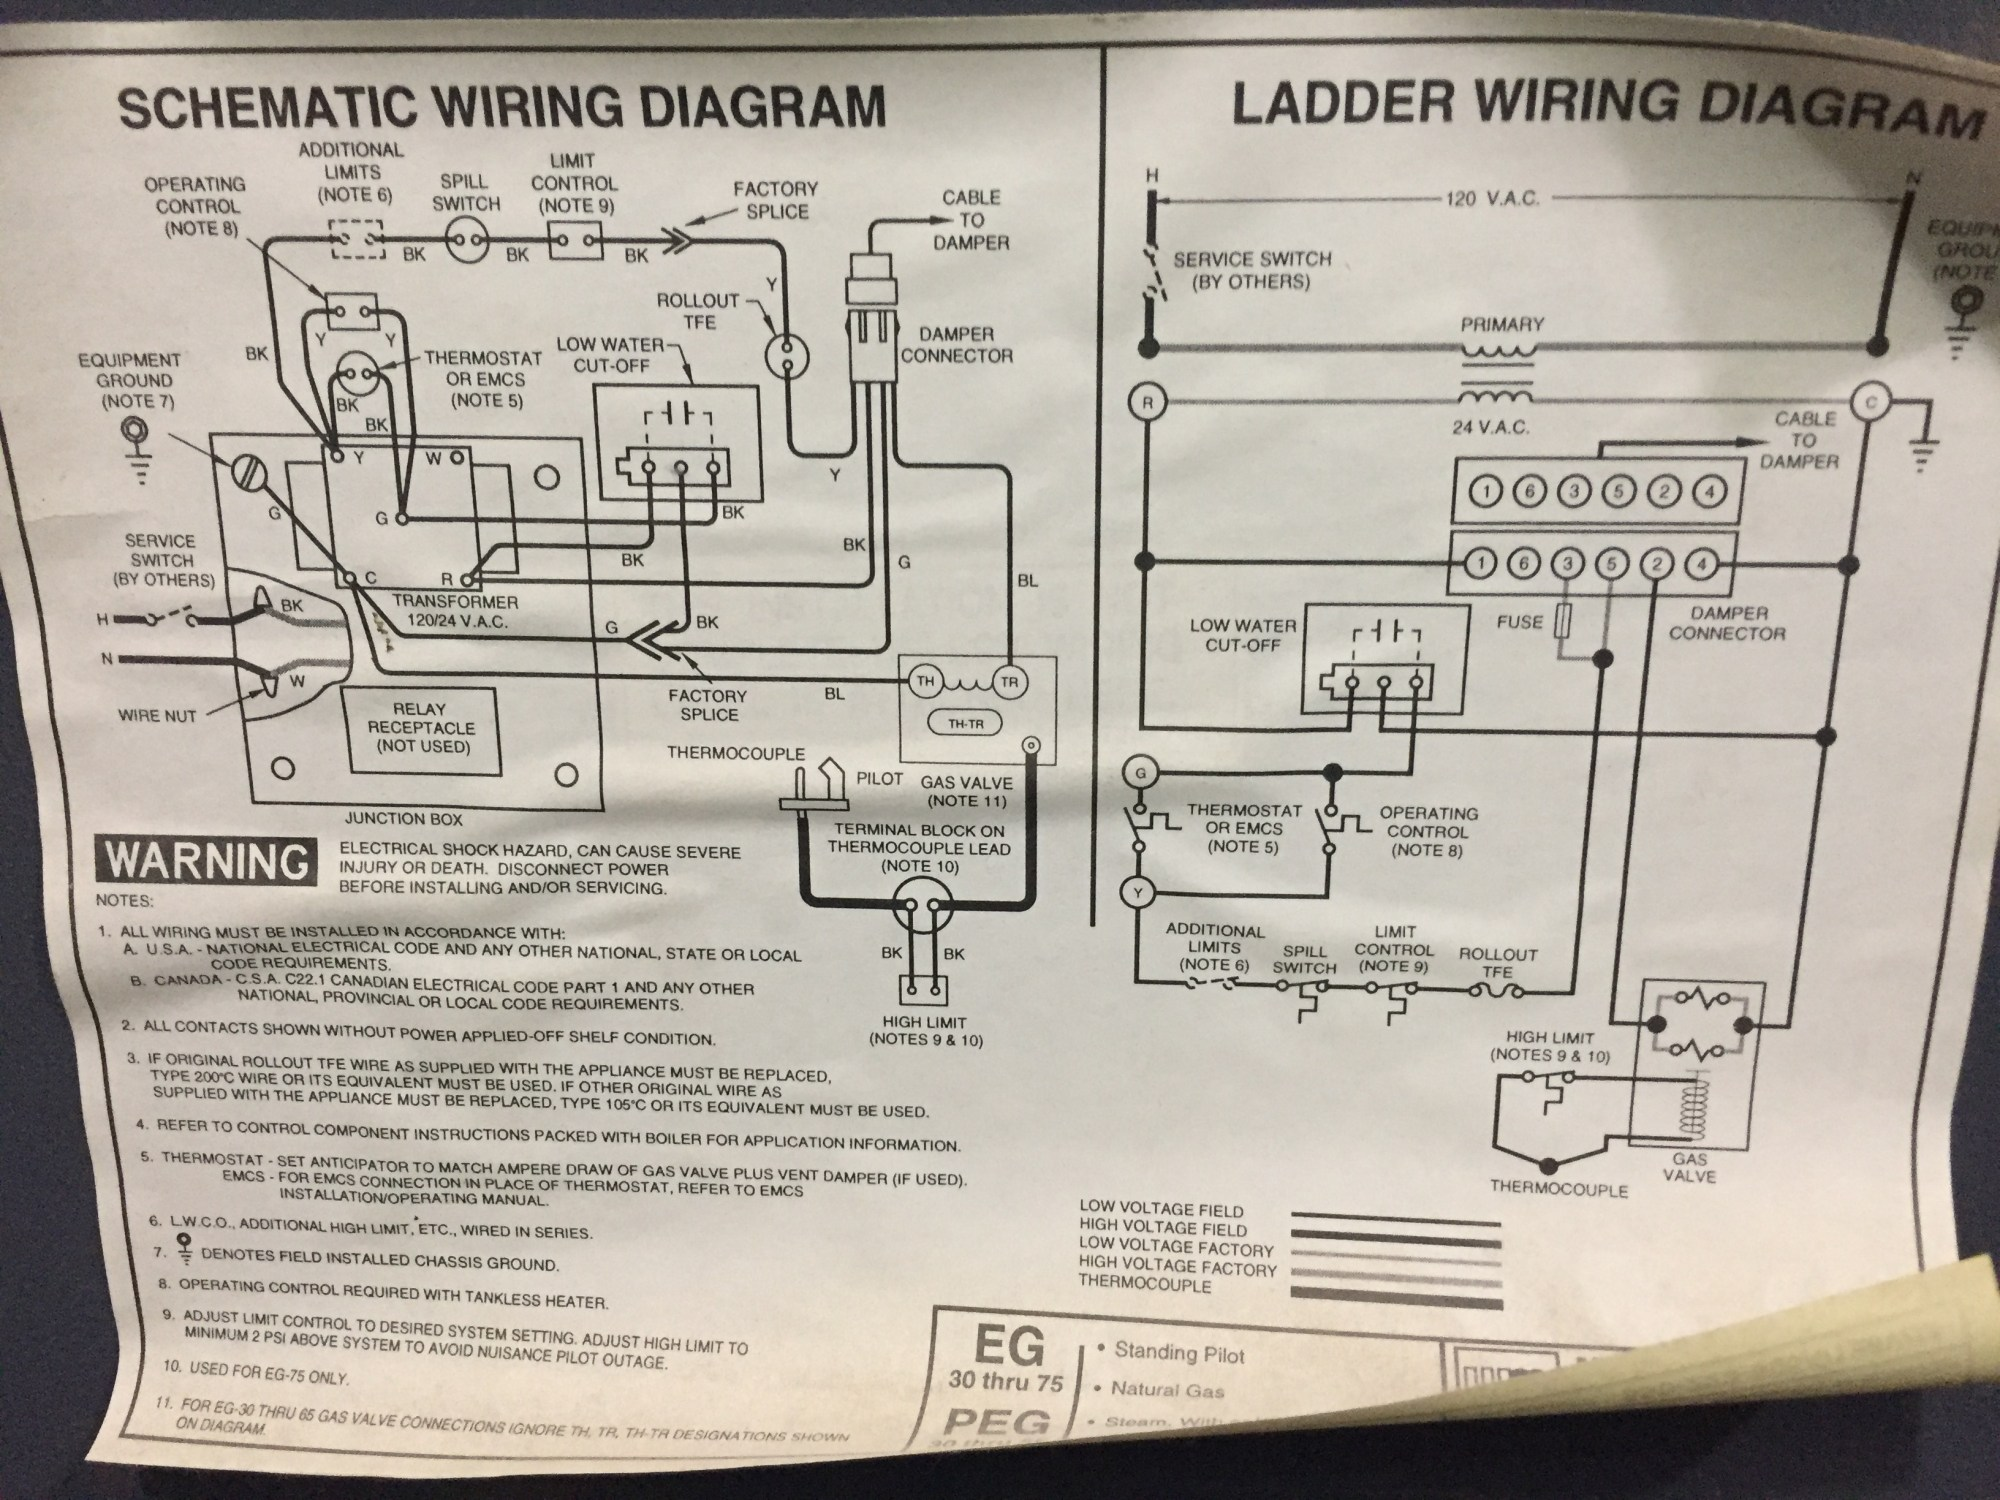 hight resolution of weil mclain boiler schematic diagram wiring diagram ebookhow to add a c wire to weil mclain boiler